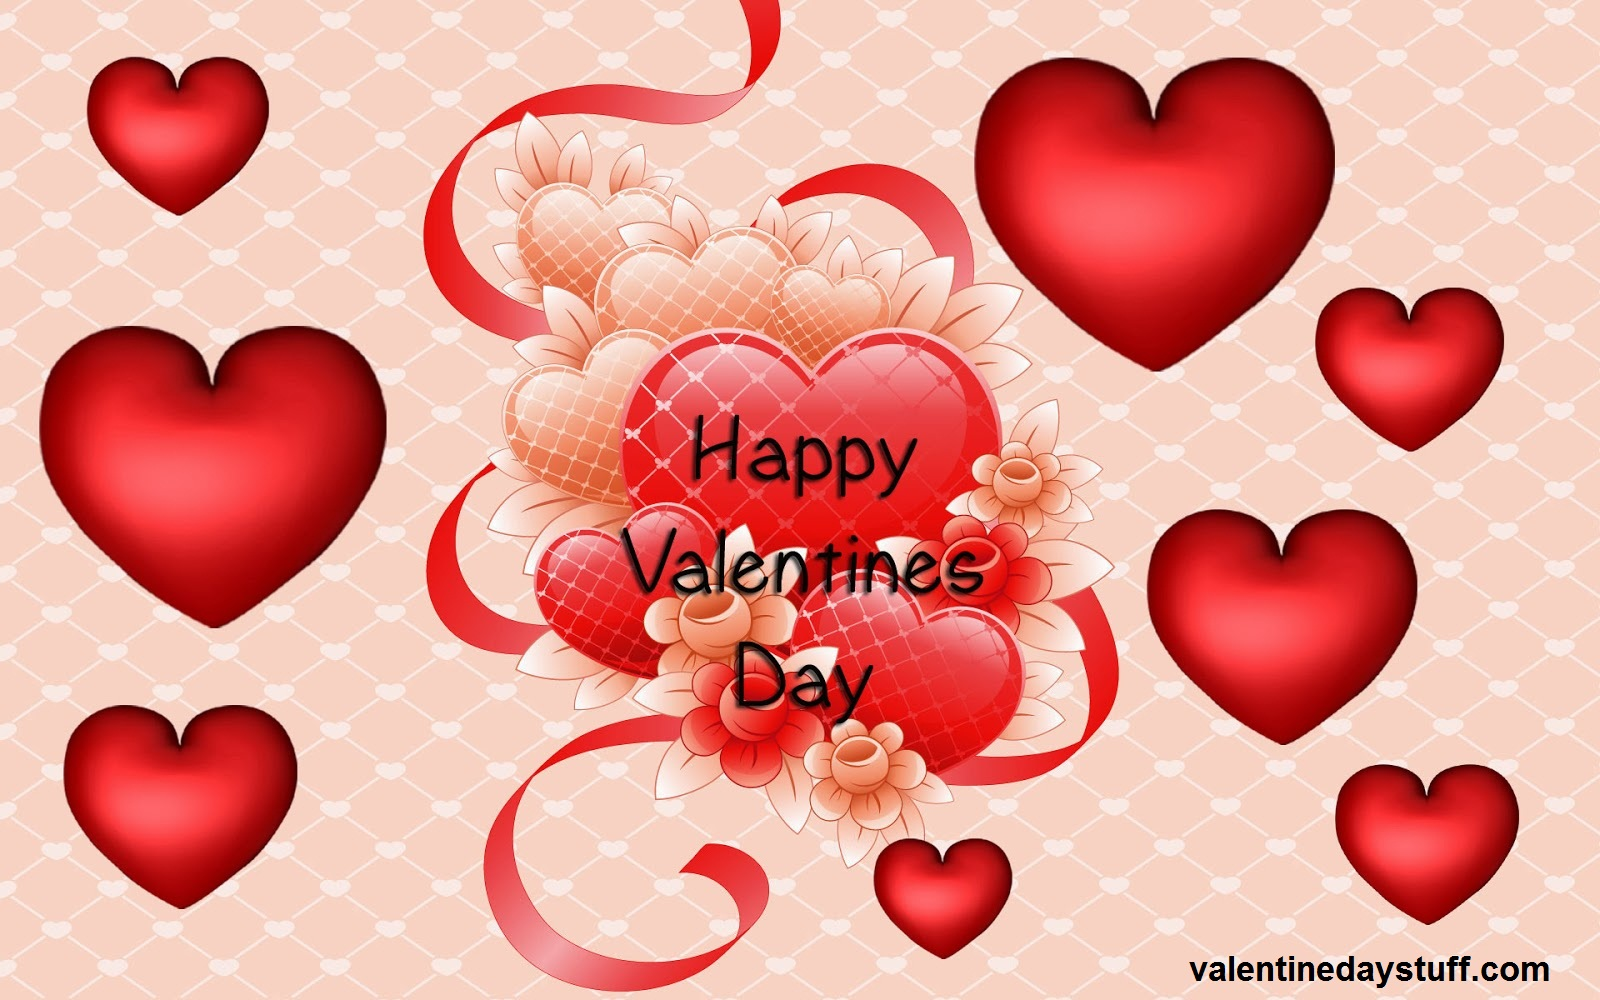 Happy Valentines Day Greeting Cards 2015 Free Download – Happy Valentines Day Cards